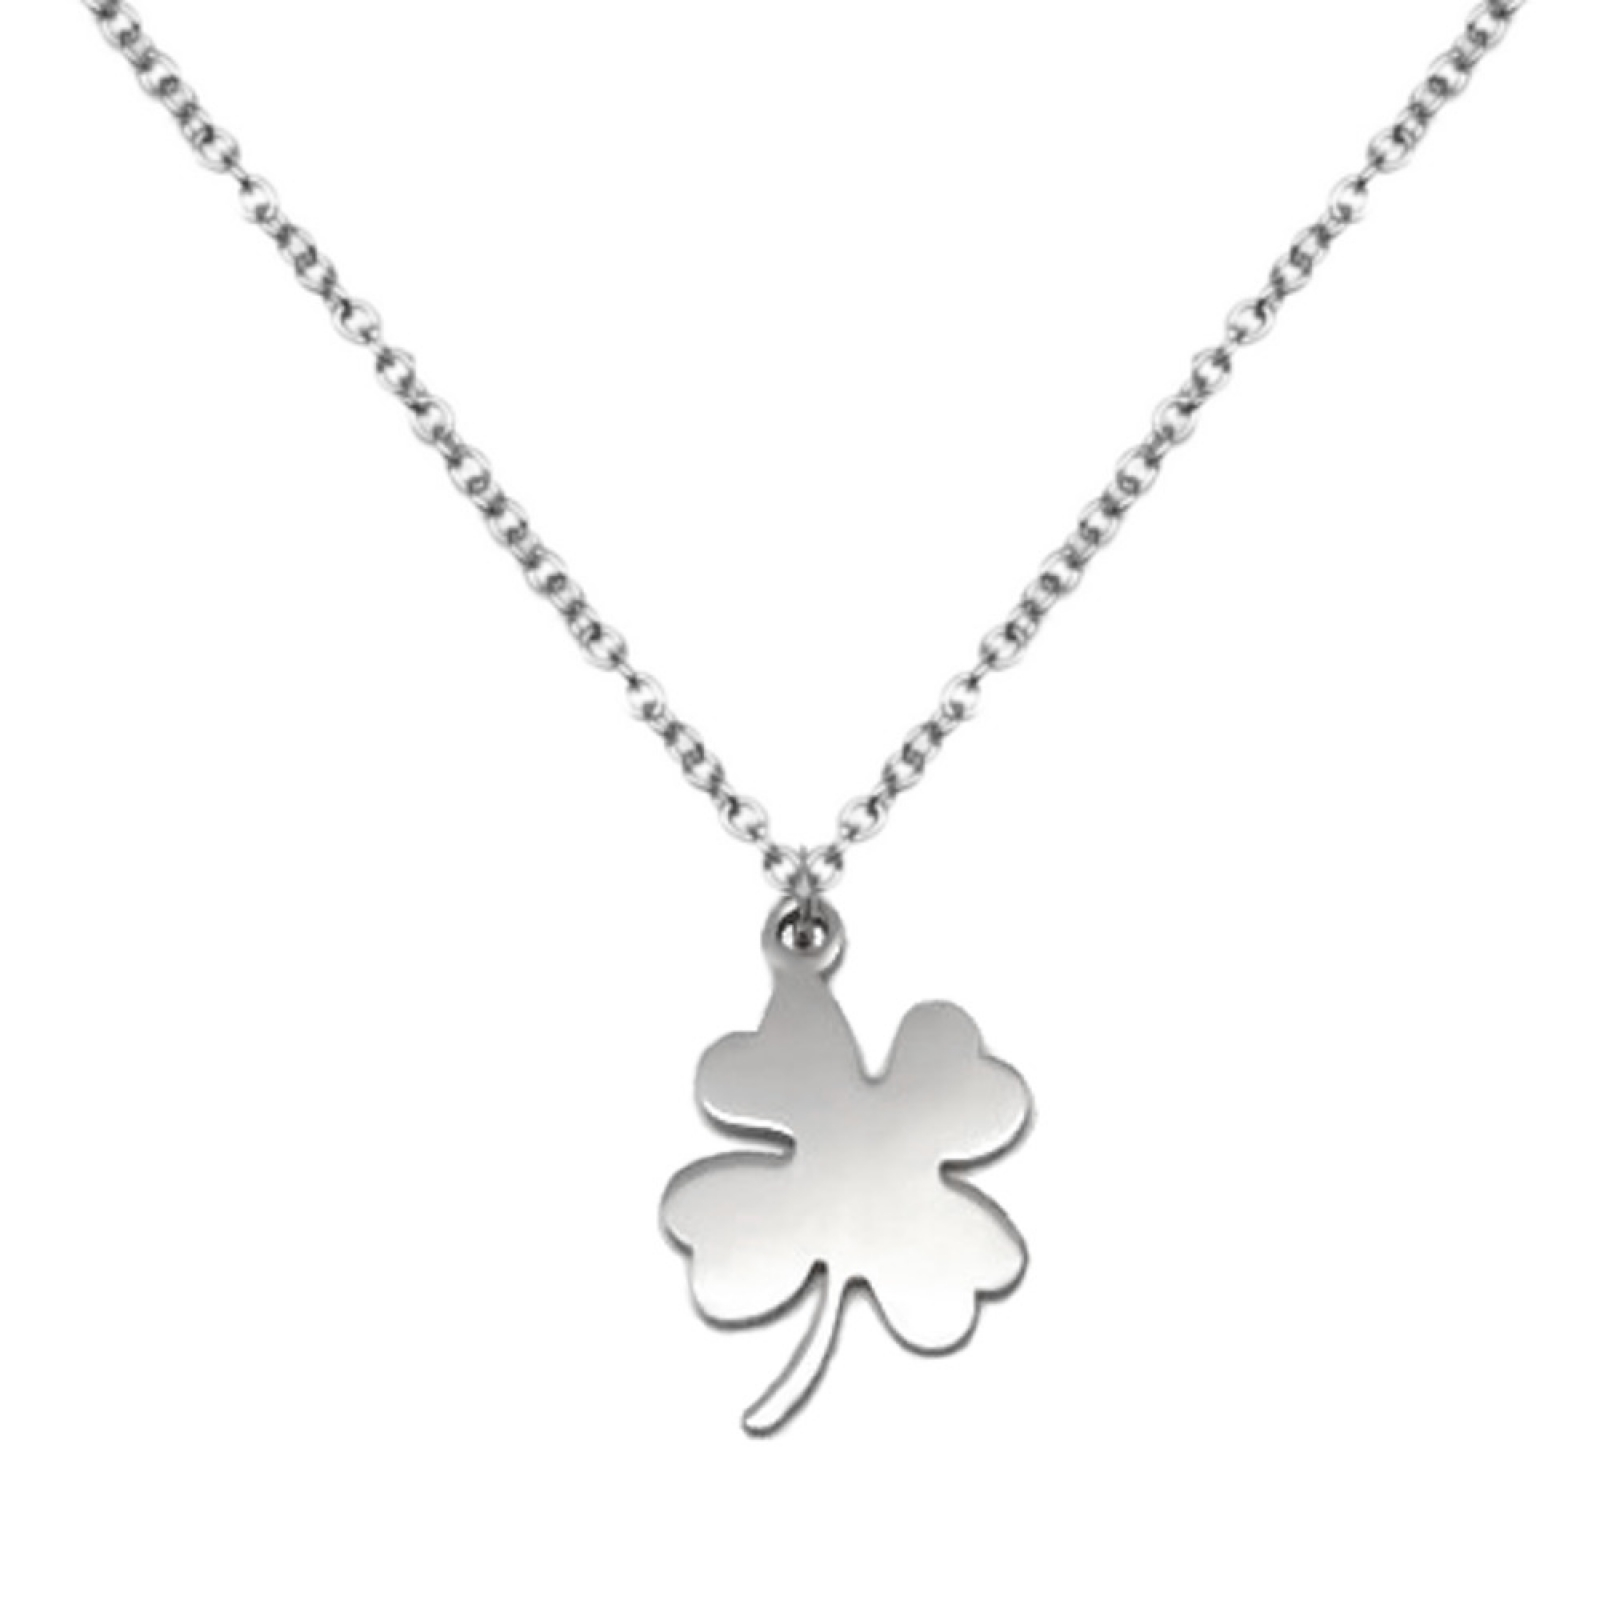 jeweller stores montreal fashion leaf product jewelry clover four design diamond lucky carat pendant serge necklace sakayan